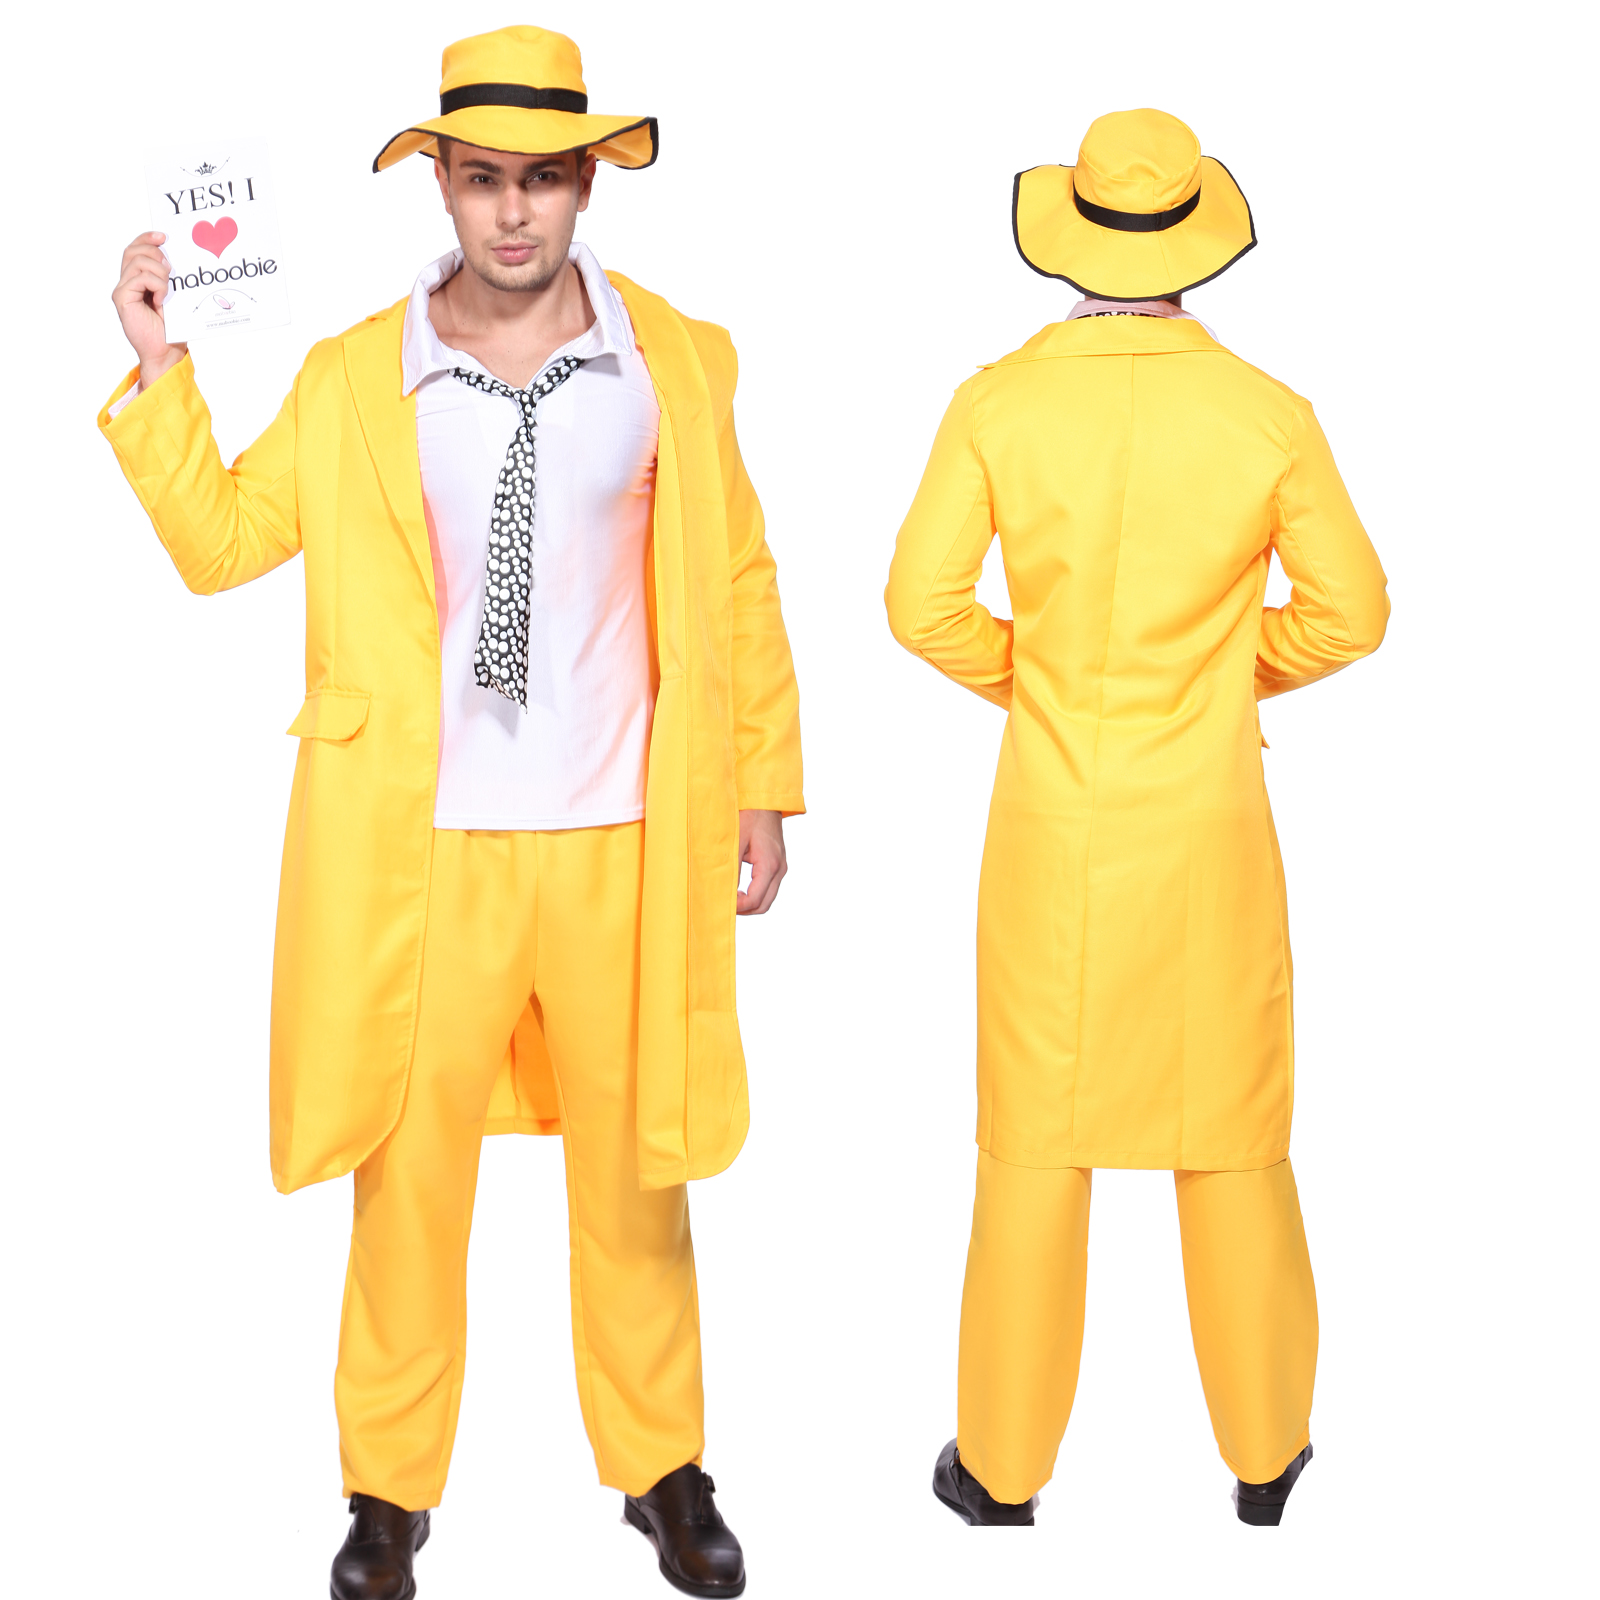 Men 90s Fancy Dress The Mask Jim Carrey Costume Yellow ... Zoot Suit The Mask